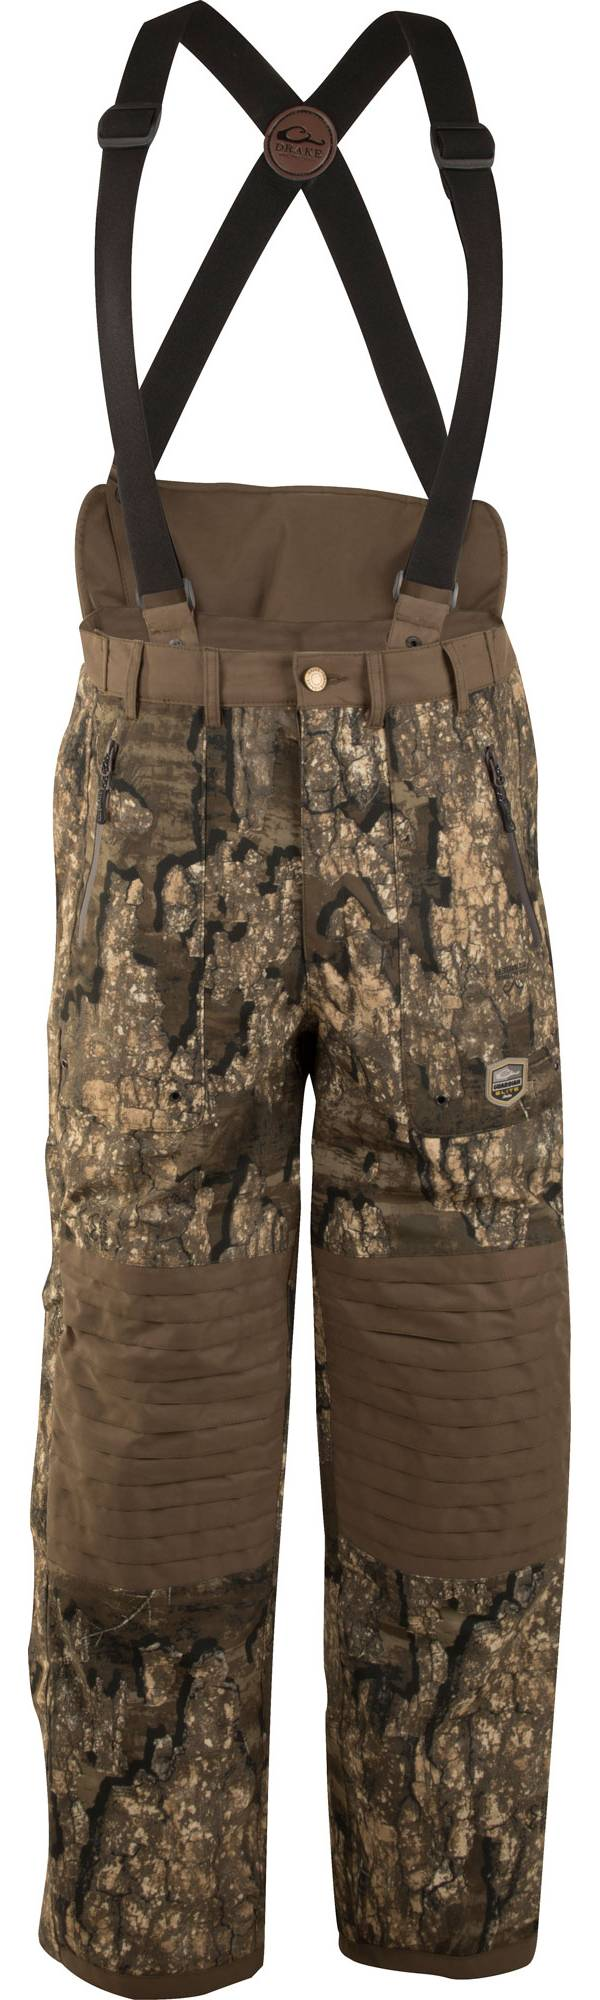 Drake Waterfowl Men's Guardian Elite High-Back Hunting Pants product image